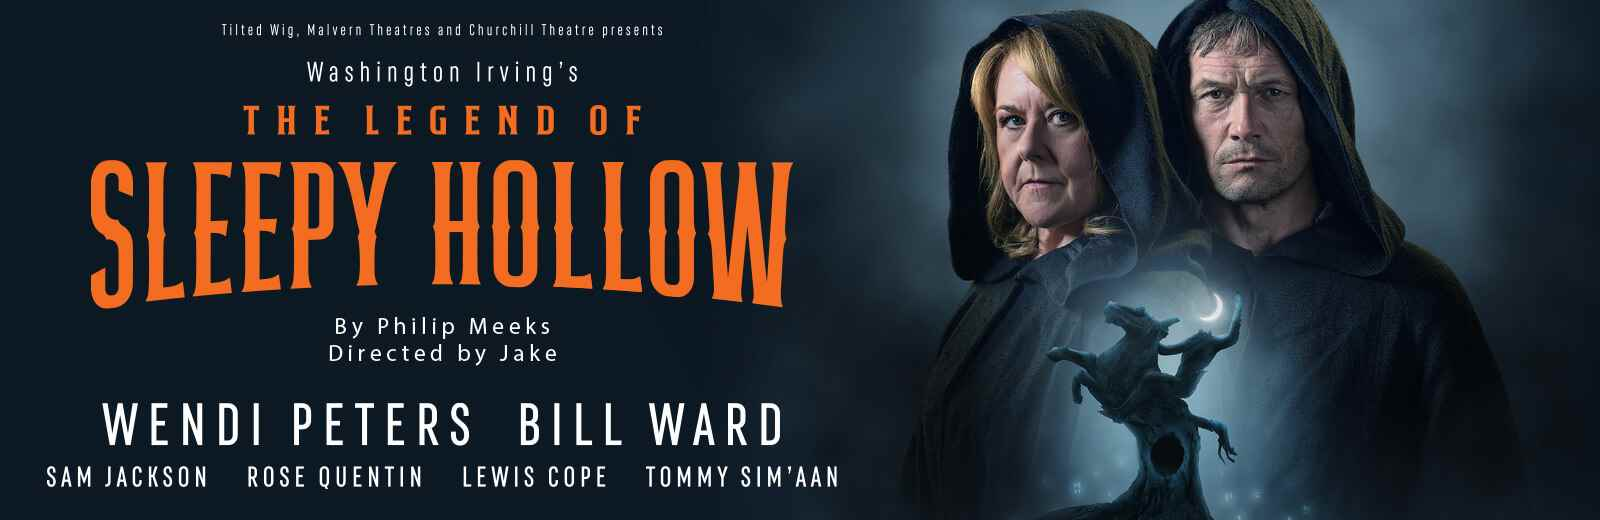 Touch tour for the visually impaired: The Legend of Sleepy Hollow